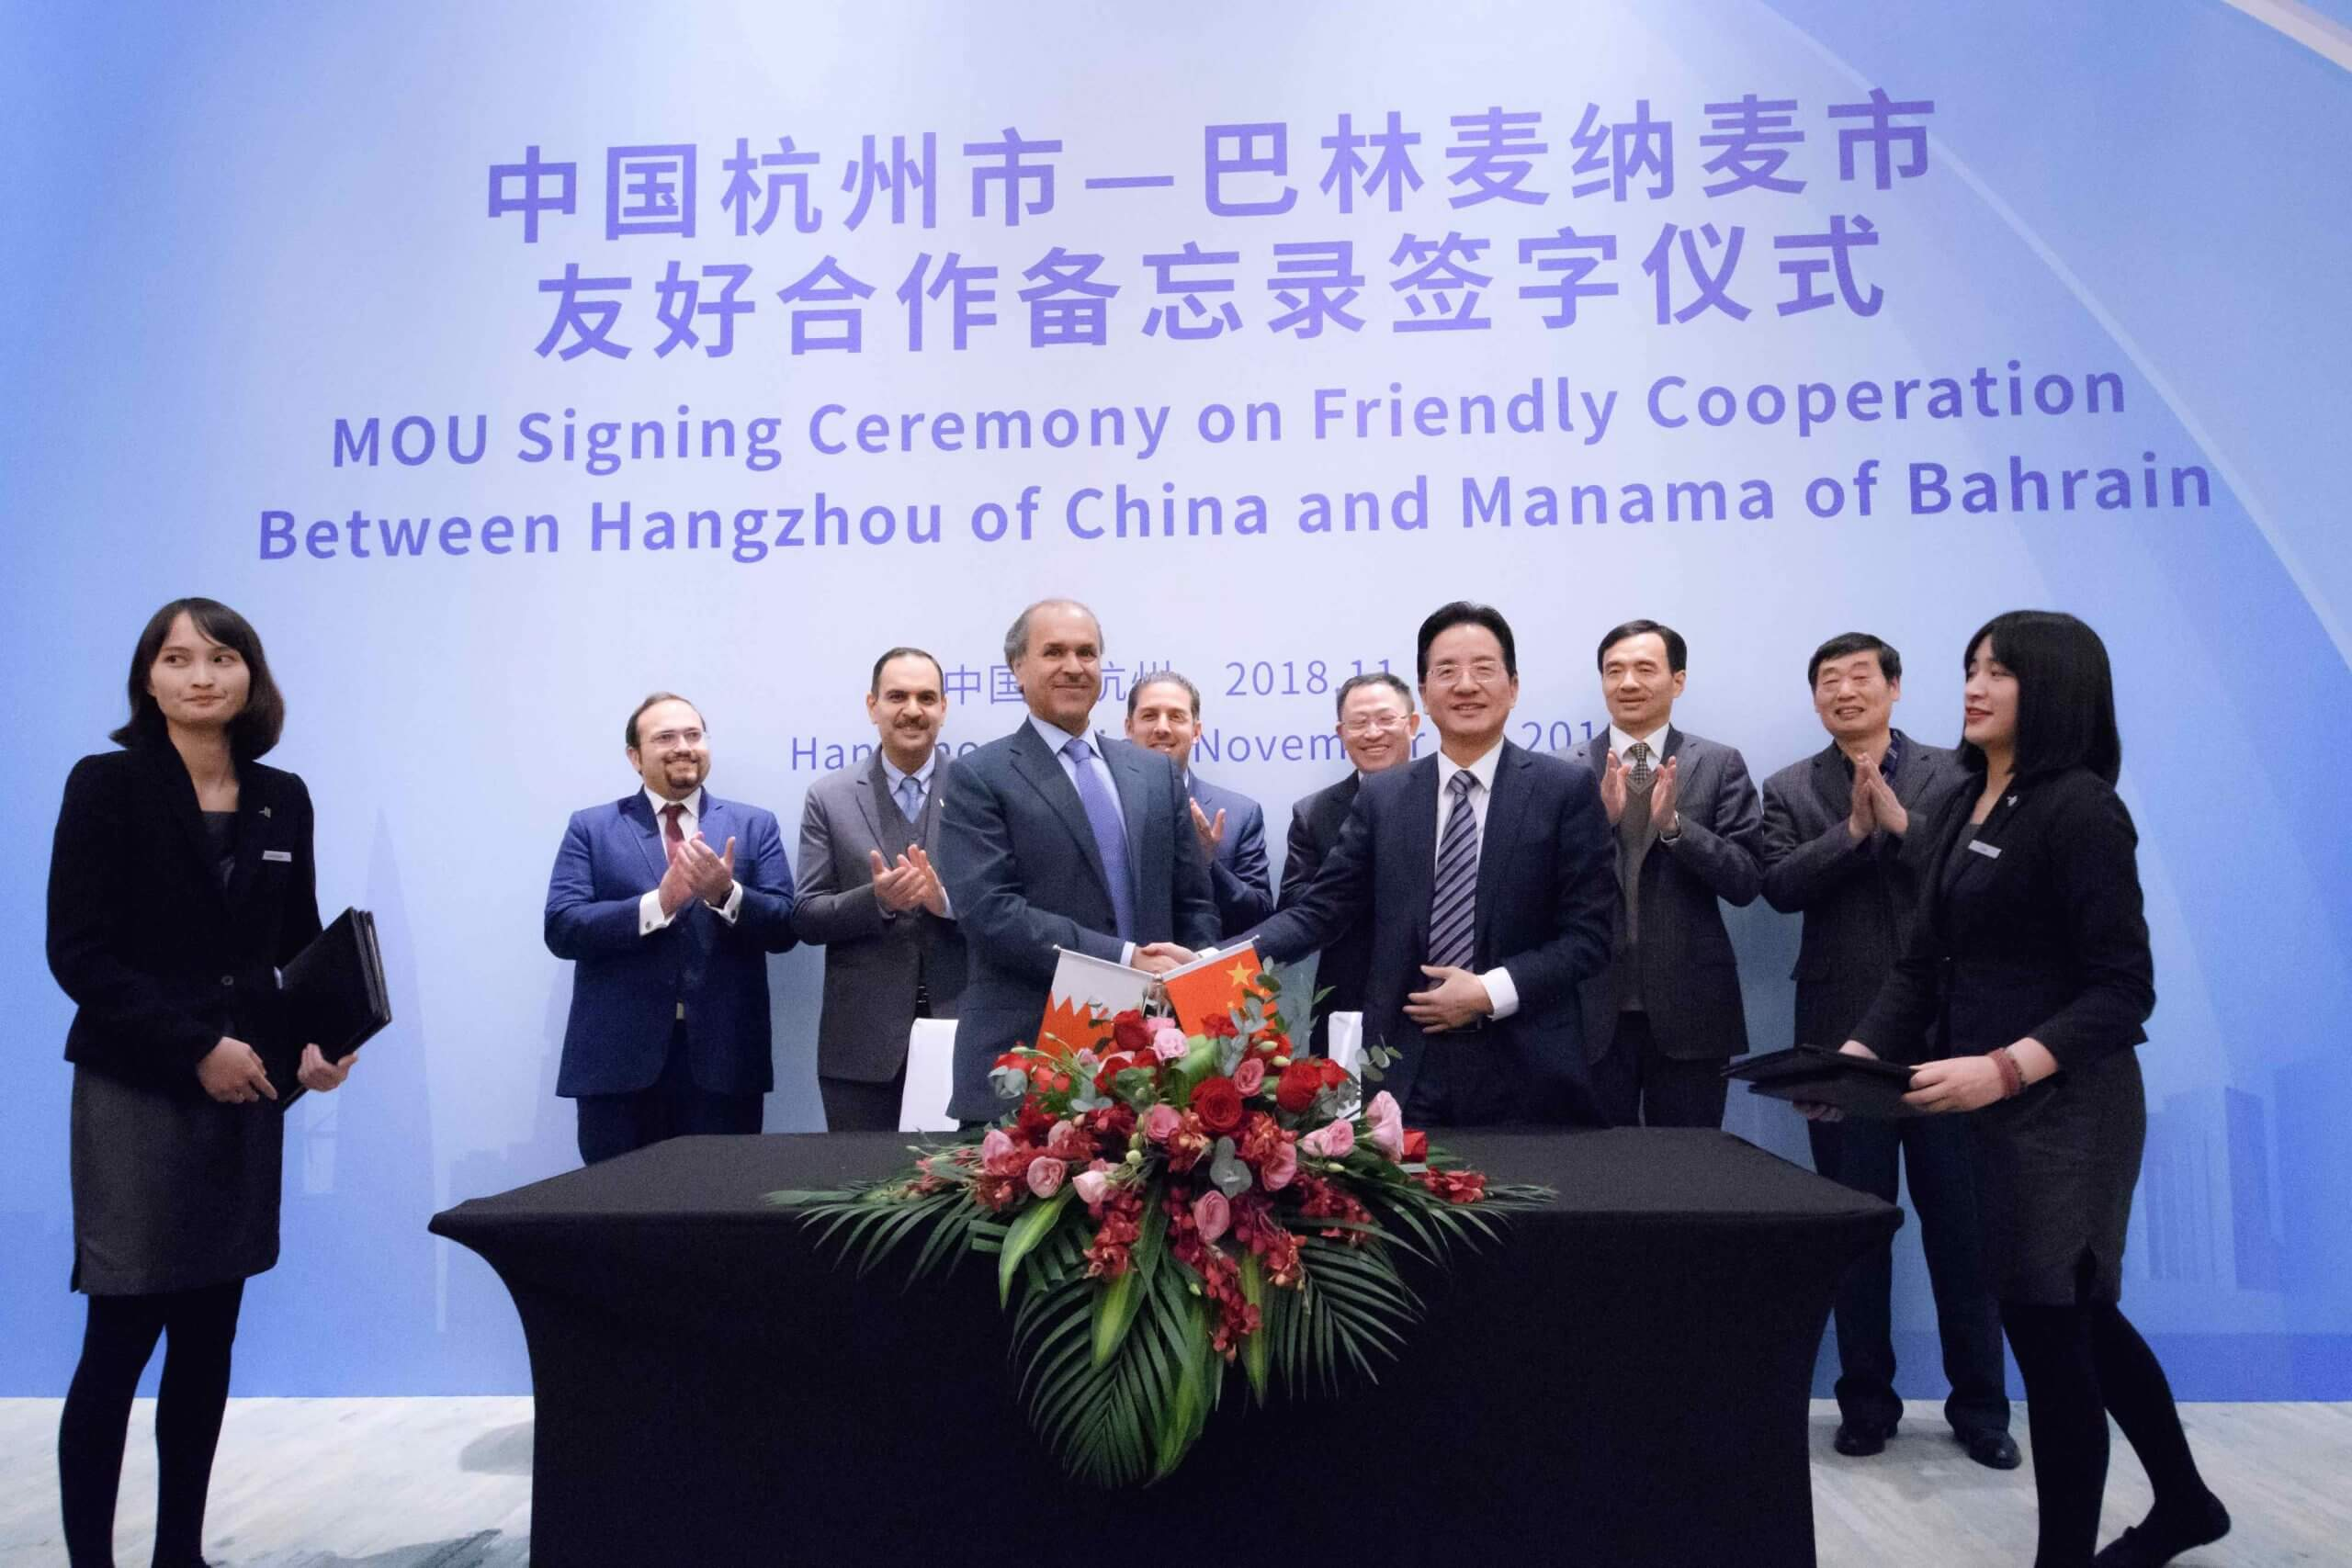 Bahrain establishes friendly cooperation with Hangzhou to explore opportunities in cross-border commerce